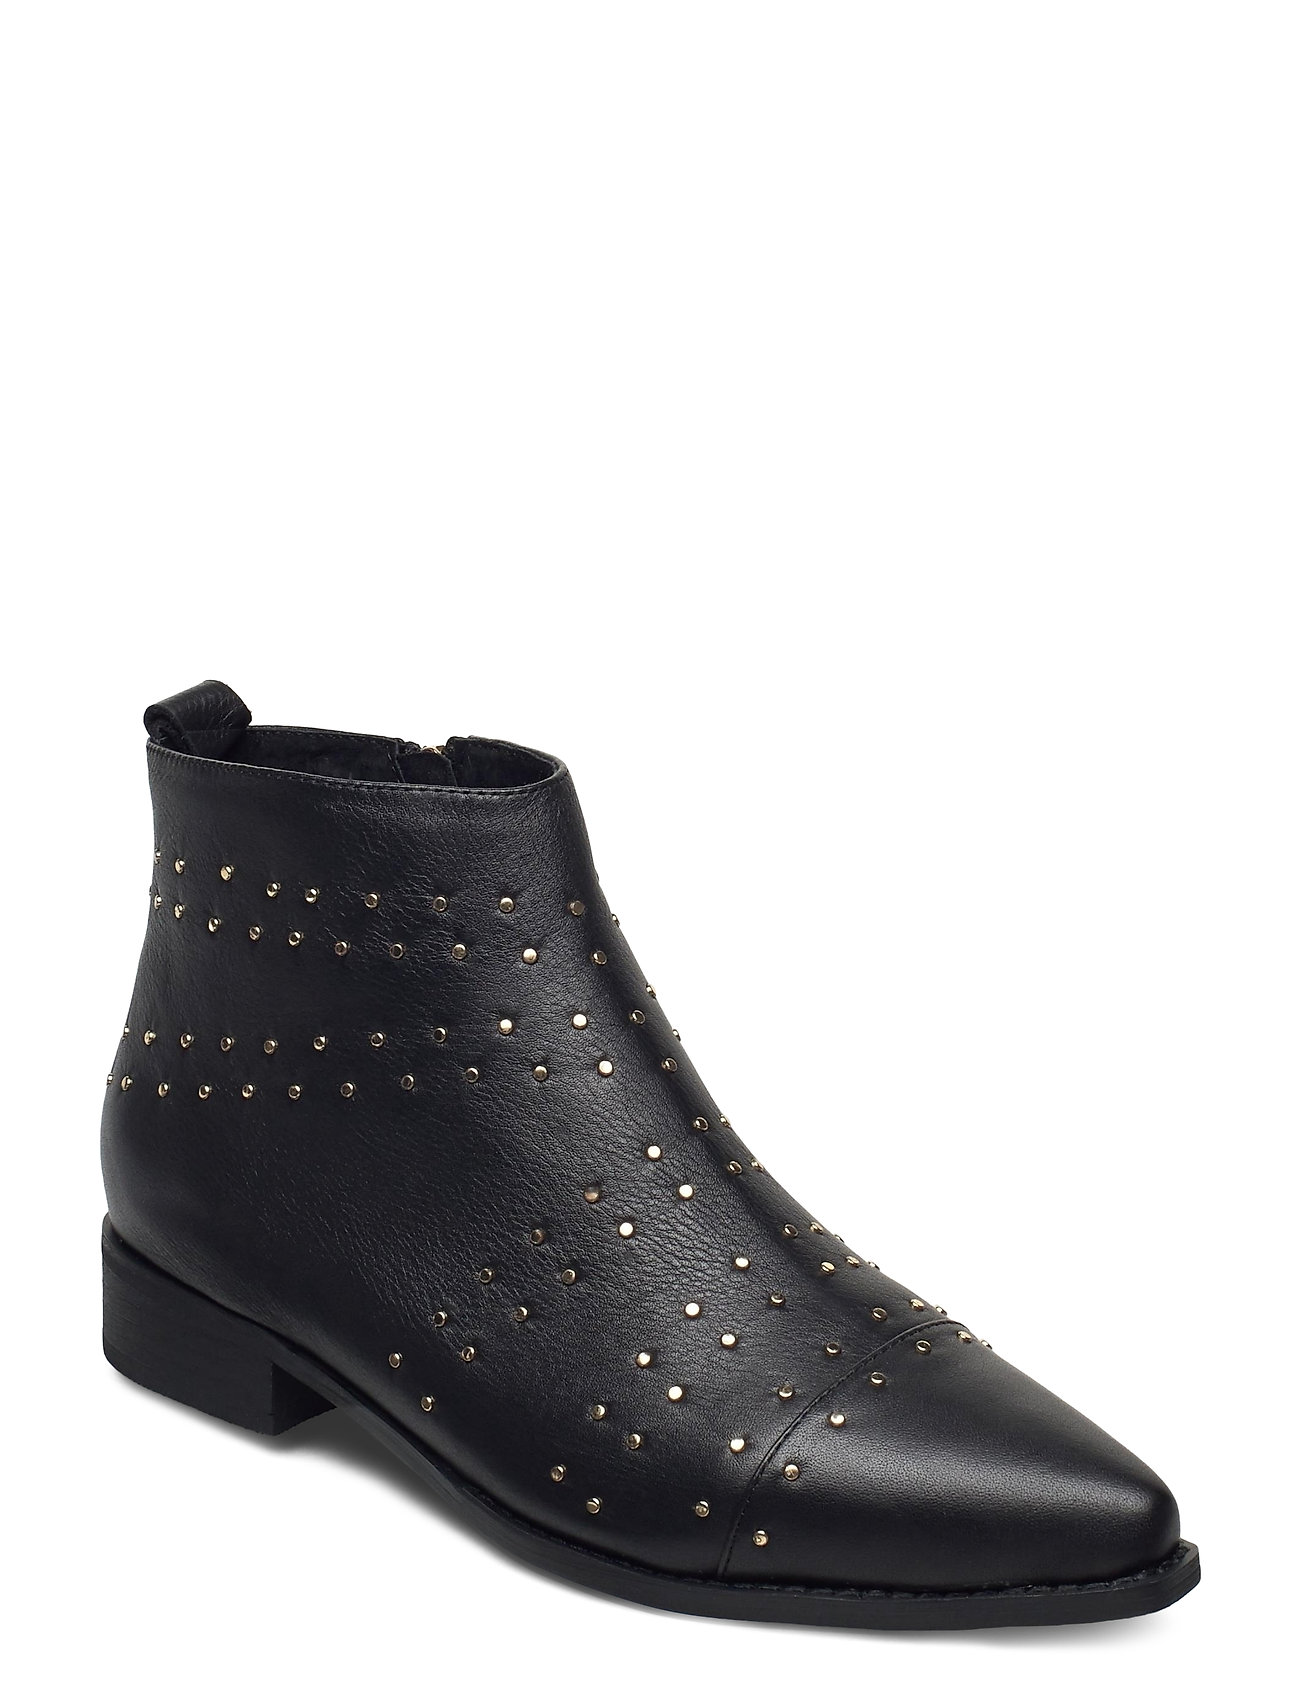 Image of Stb-Miho Zip Studs L Shoes Boots Ankle Boots Ankle Boot - Flat Sort Shoe The Bear (3455508155)